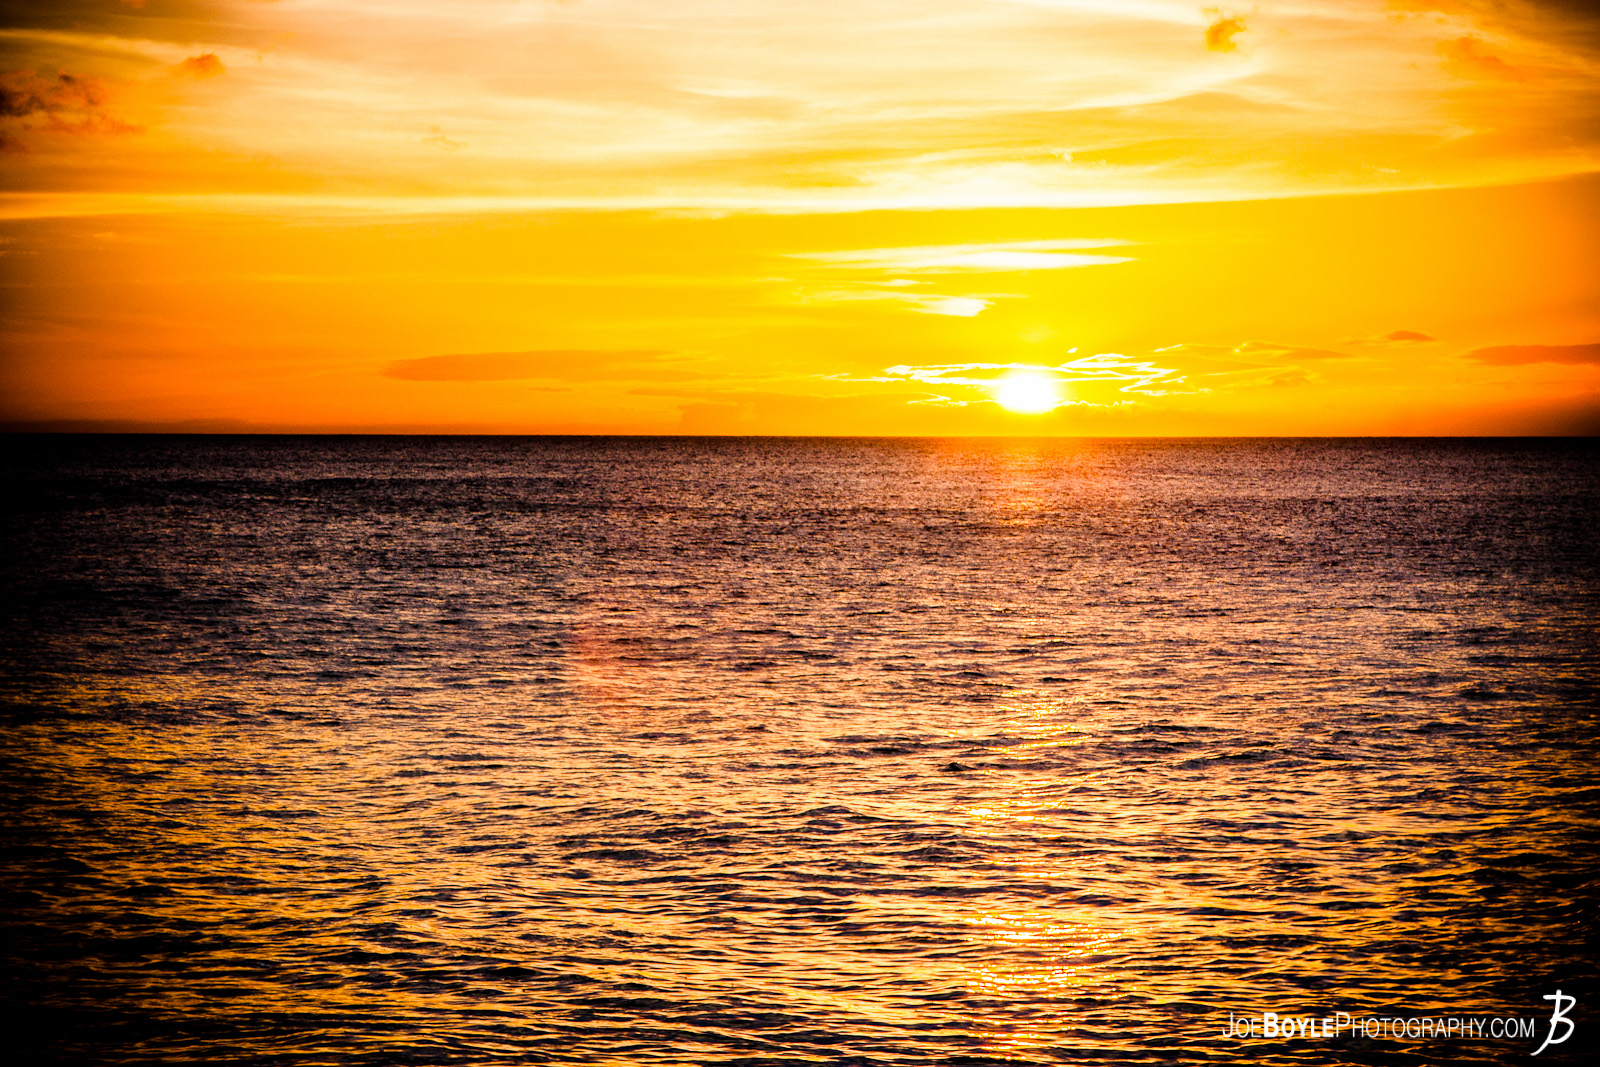 While staying at the Aulani Disney Resort, I ventured out one evening to hopefully capture some beautiful images of the sunset over the Pacific Ocean and I came back with this image!